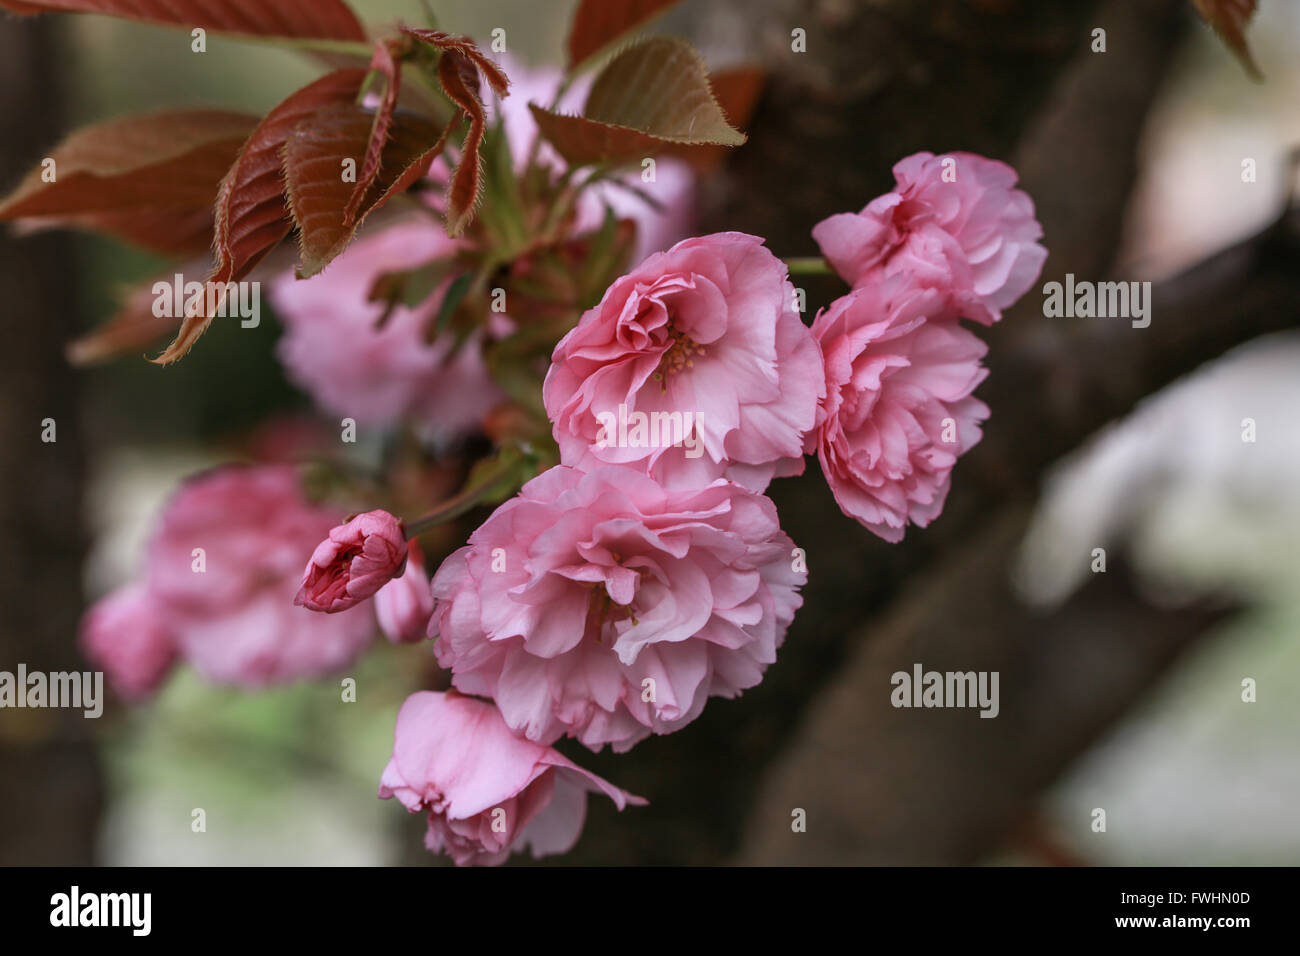 Prunus serrulata Photo Stock